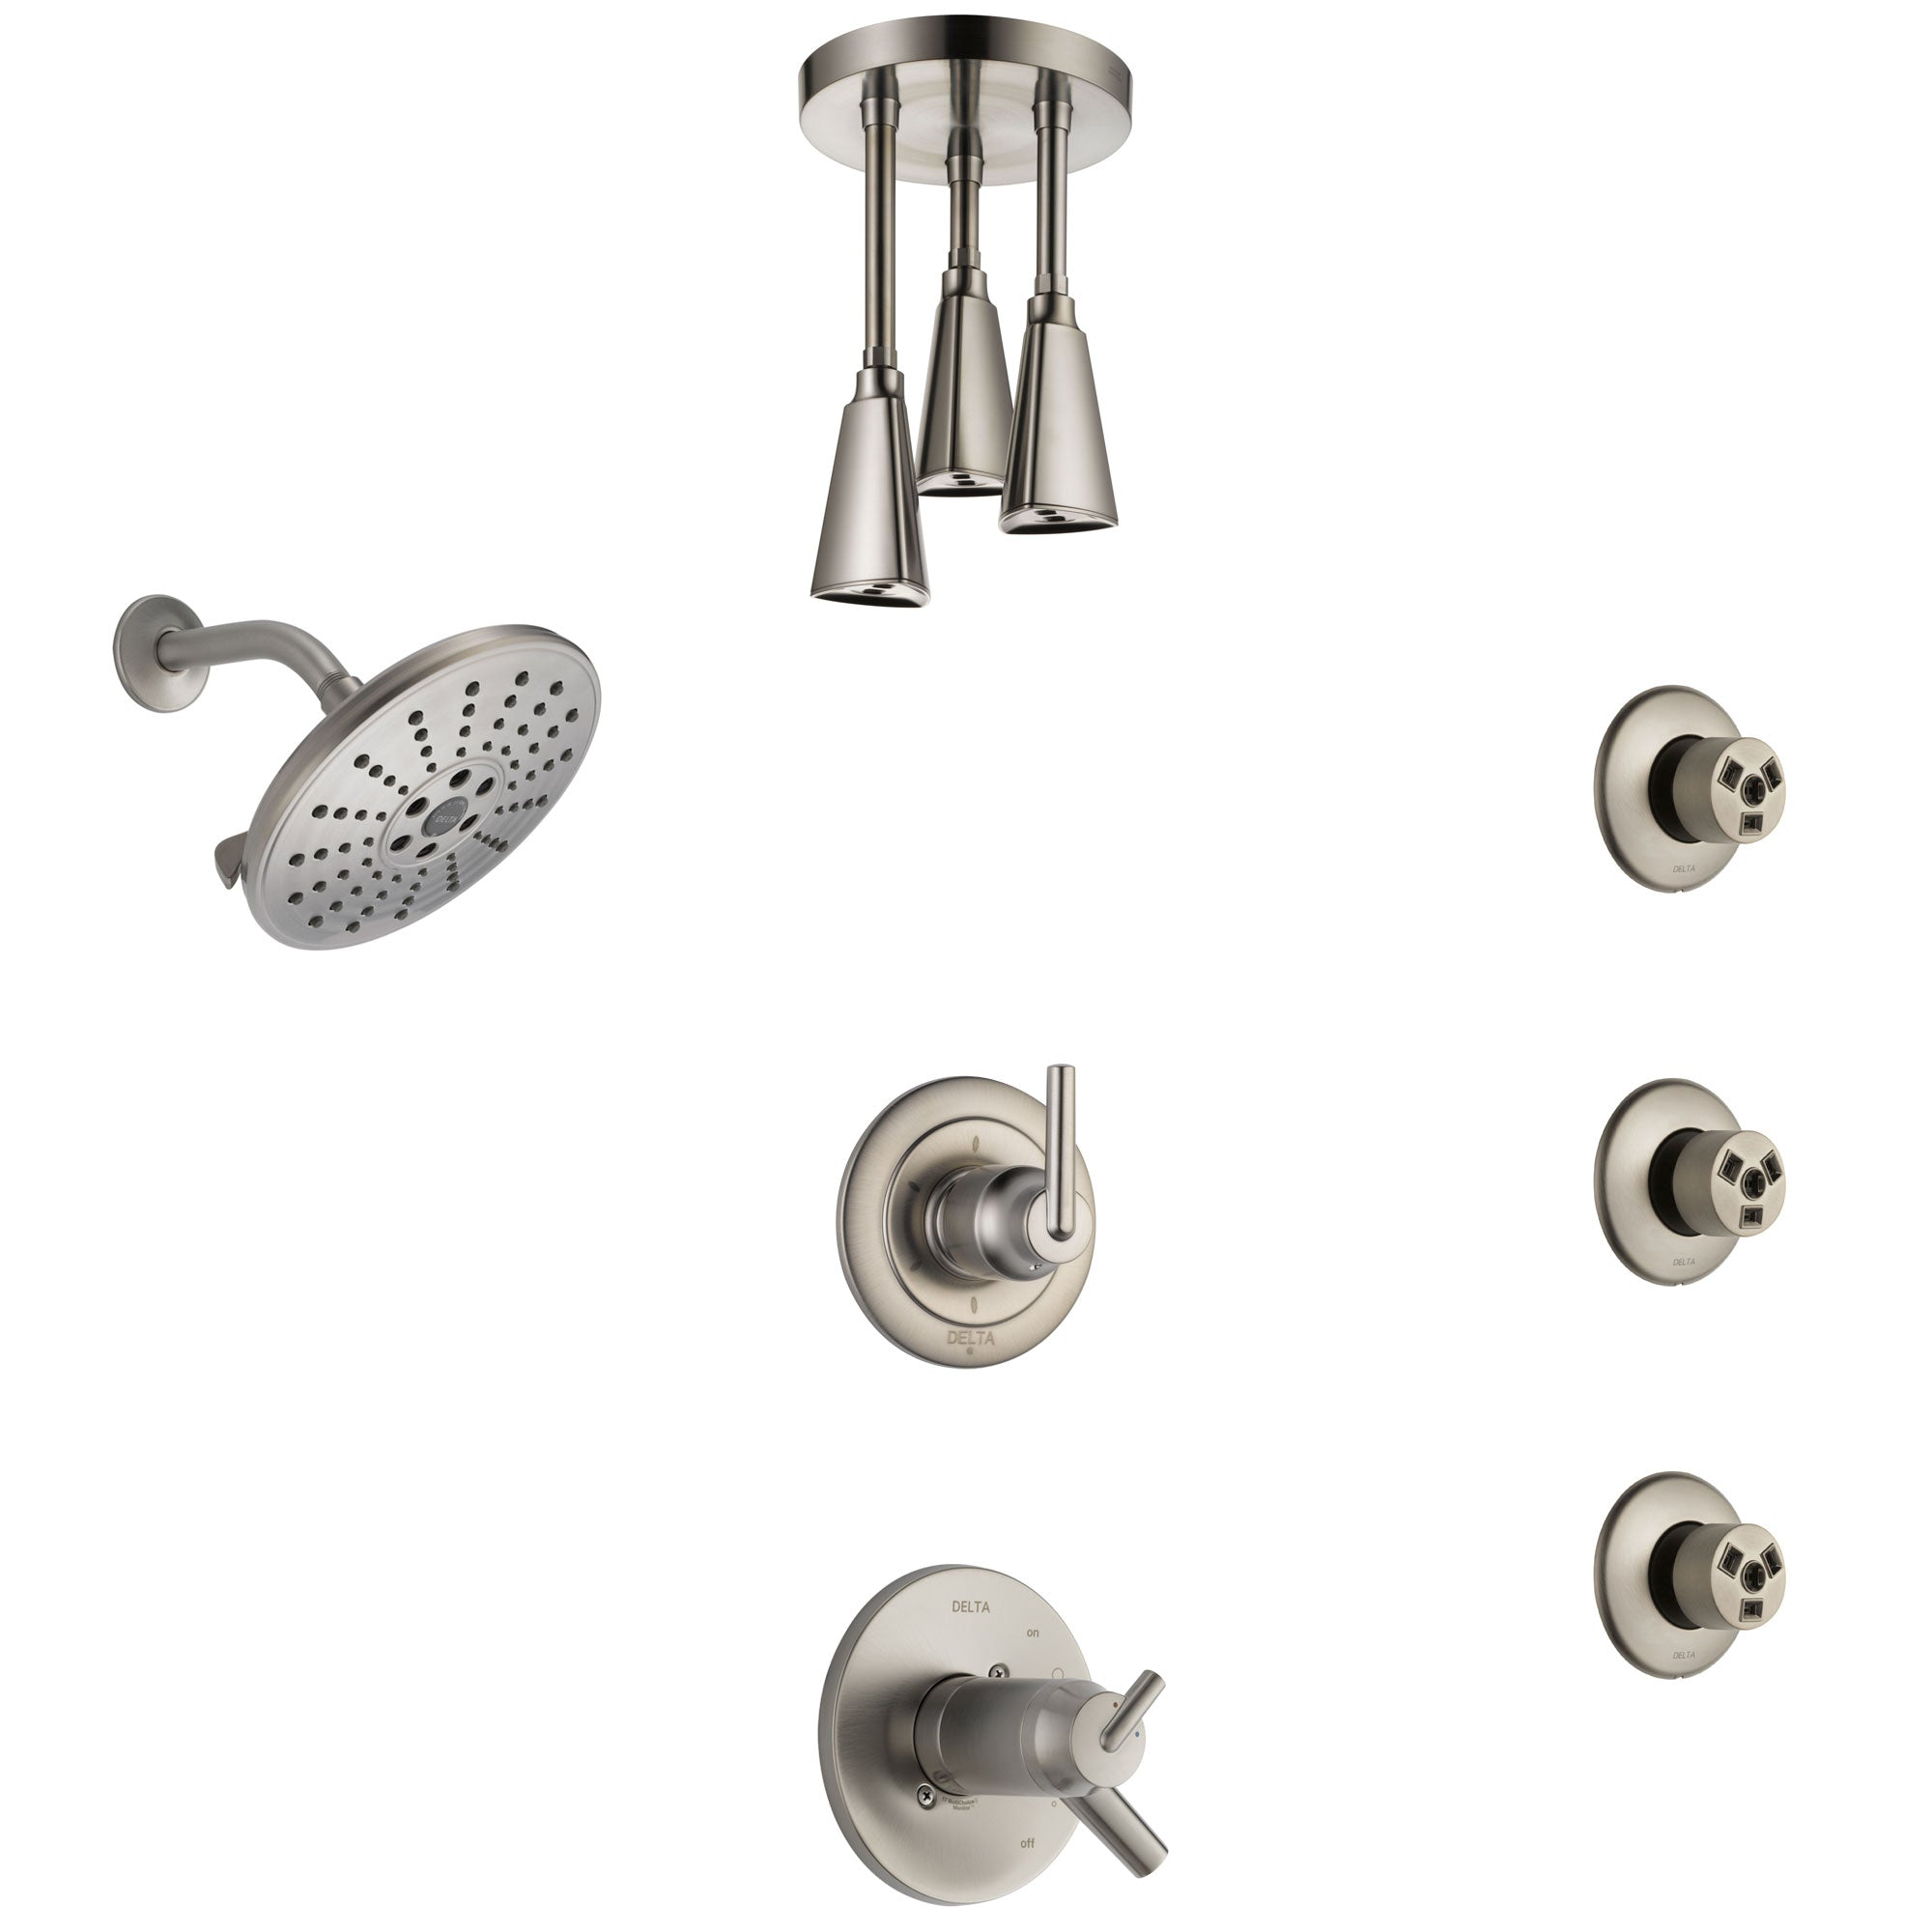 Delta Trinsic Dual Thermostatic Control Stainless Steel Finish Shower System, Diverter, Showerhead, Ceiling Showerhead, and 3 Body Sprays SS17T2591SS6